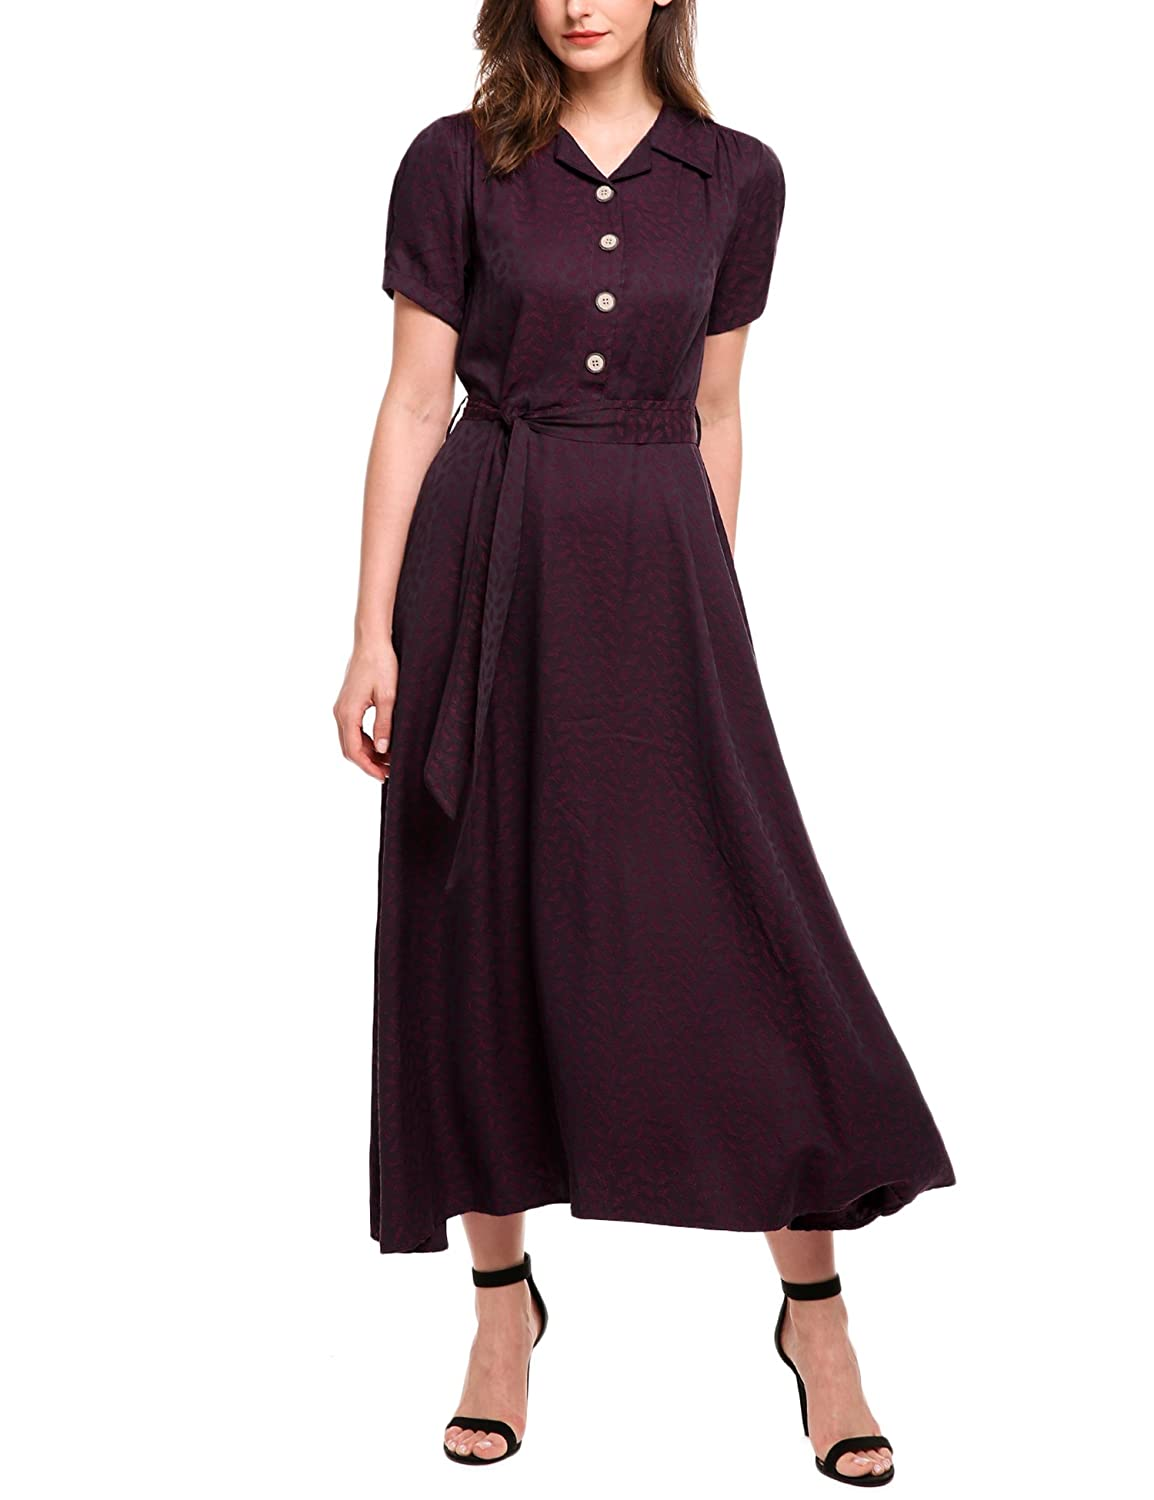 Cottagecore Dresses Aesthetic, Granny, Vintage ACEVOG Women Vintage Style Turn Down Collar Short Sleeve High Waist Maxi Swing Dress with Belt $38.99 AT vintagedancer.com